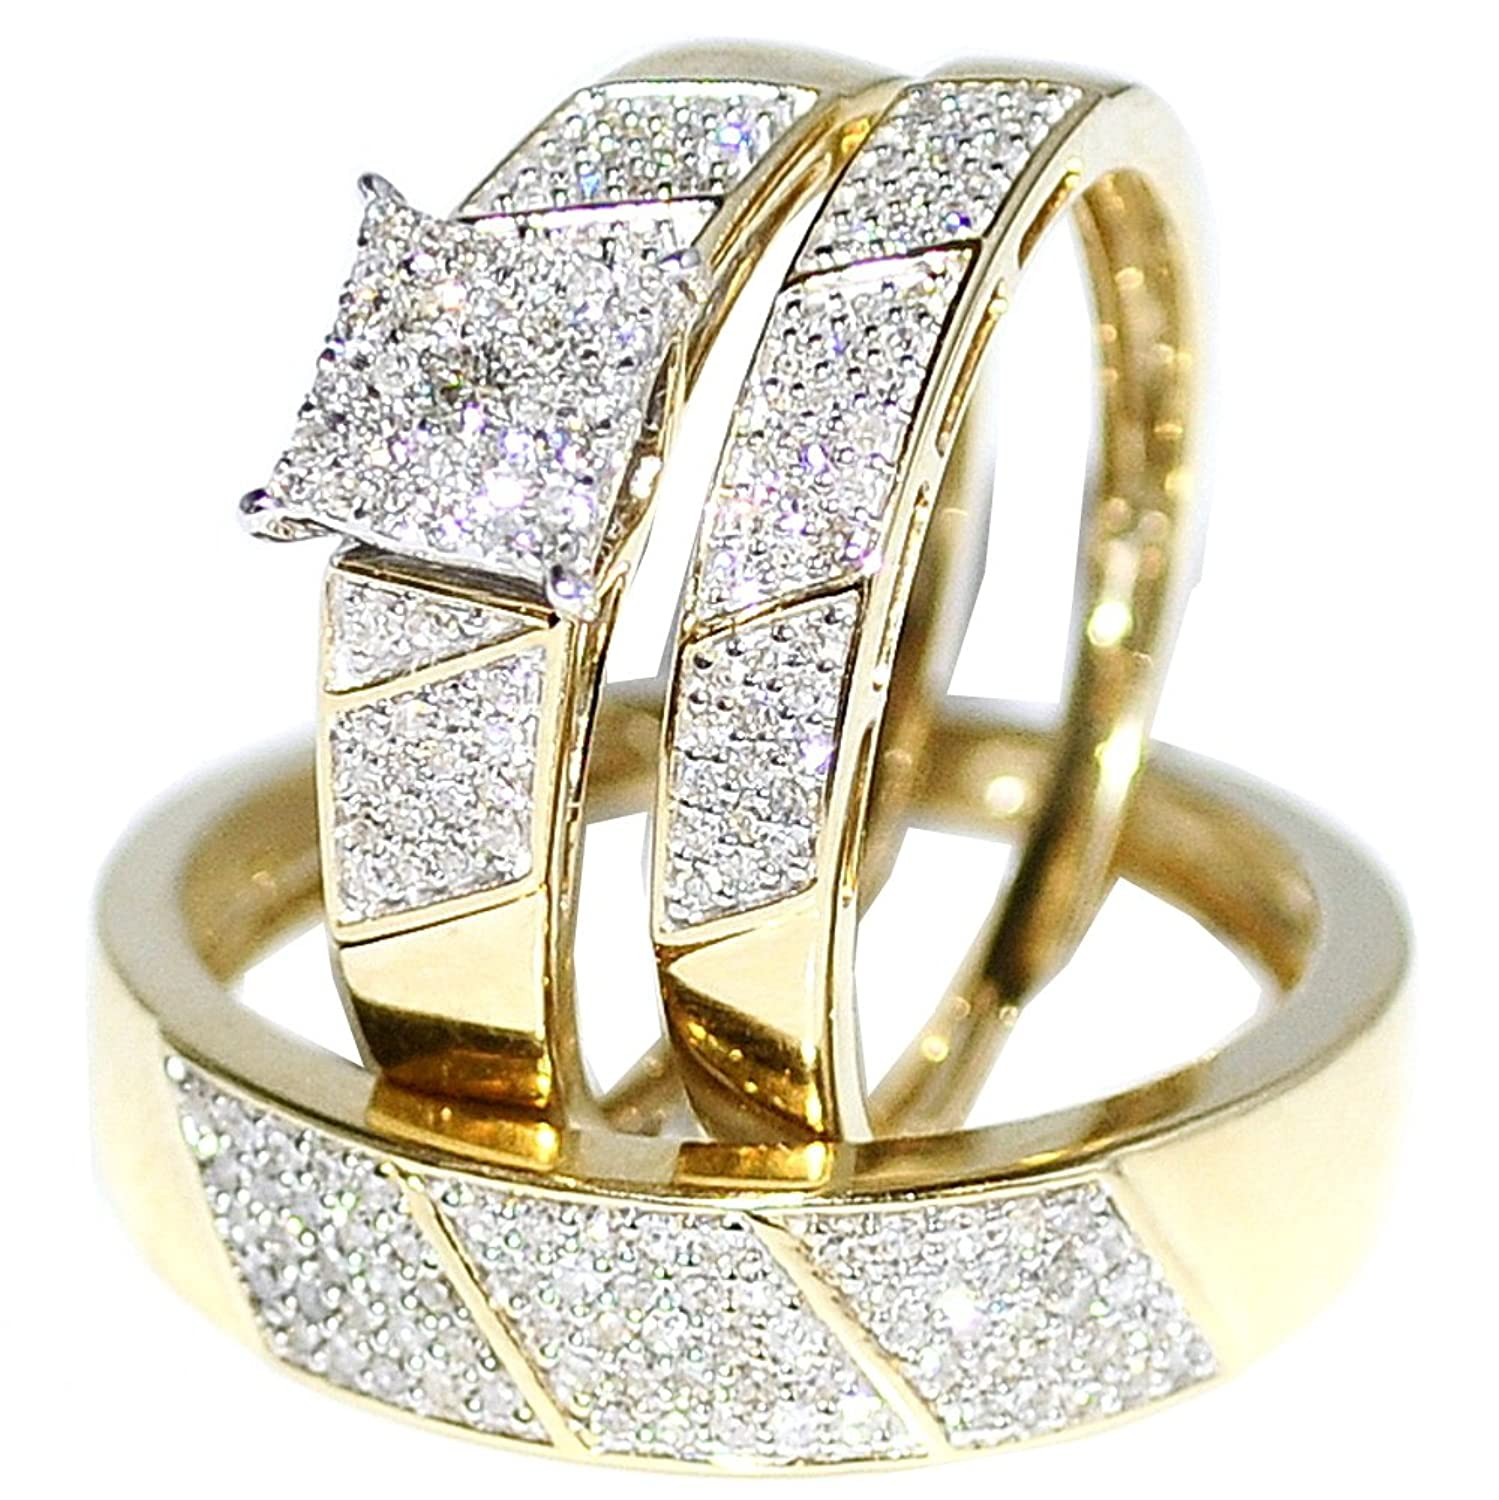 women traditional for band anyone gold a wear wedding caymancode plain rings